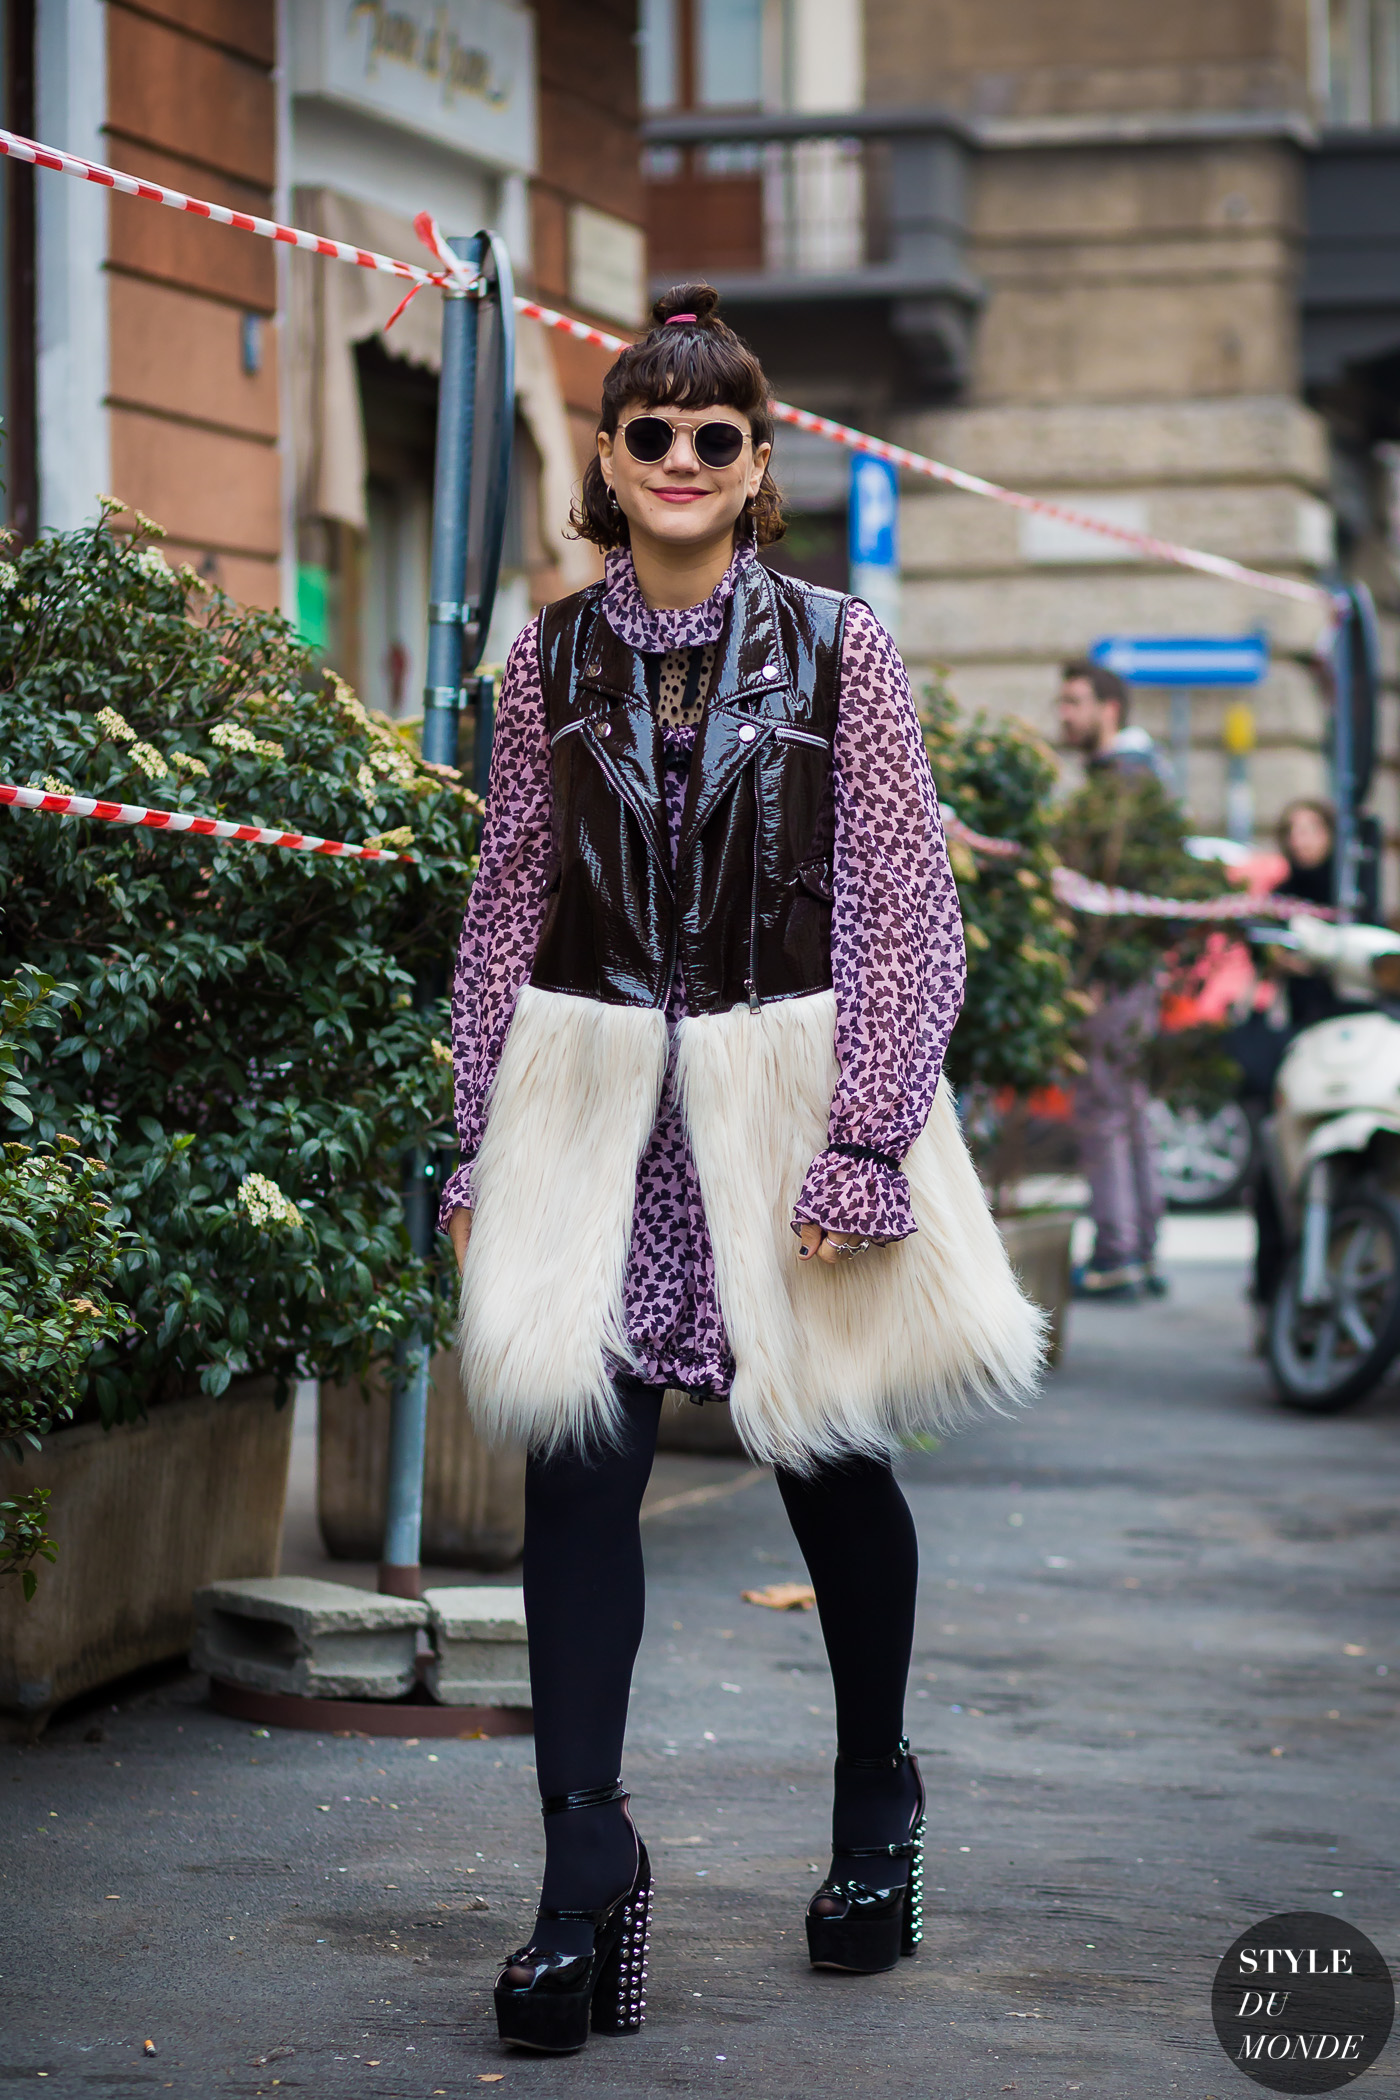 Soko Stephanie Sokolinski Street Style Street Fashion Streetsnaps by STYLEDUMONDE Street Style Fashion Photography